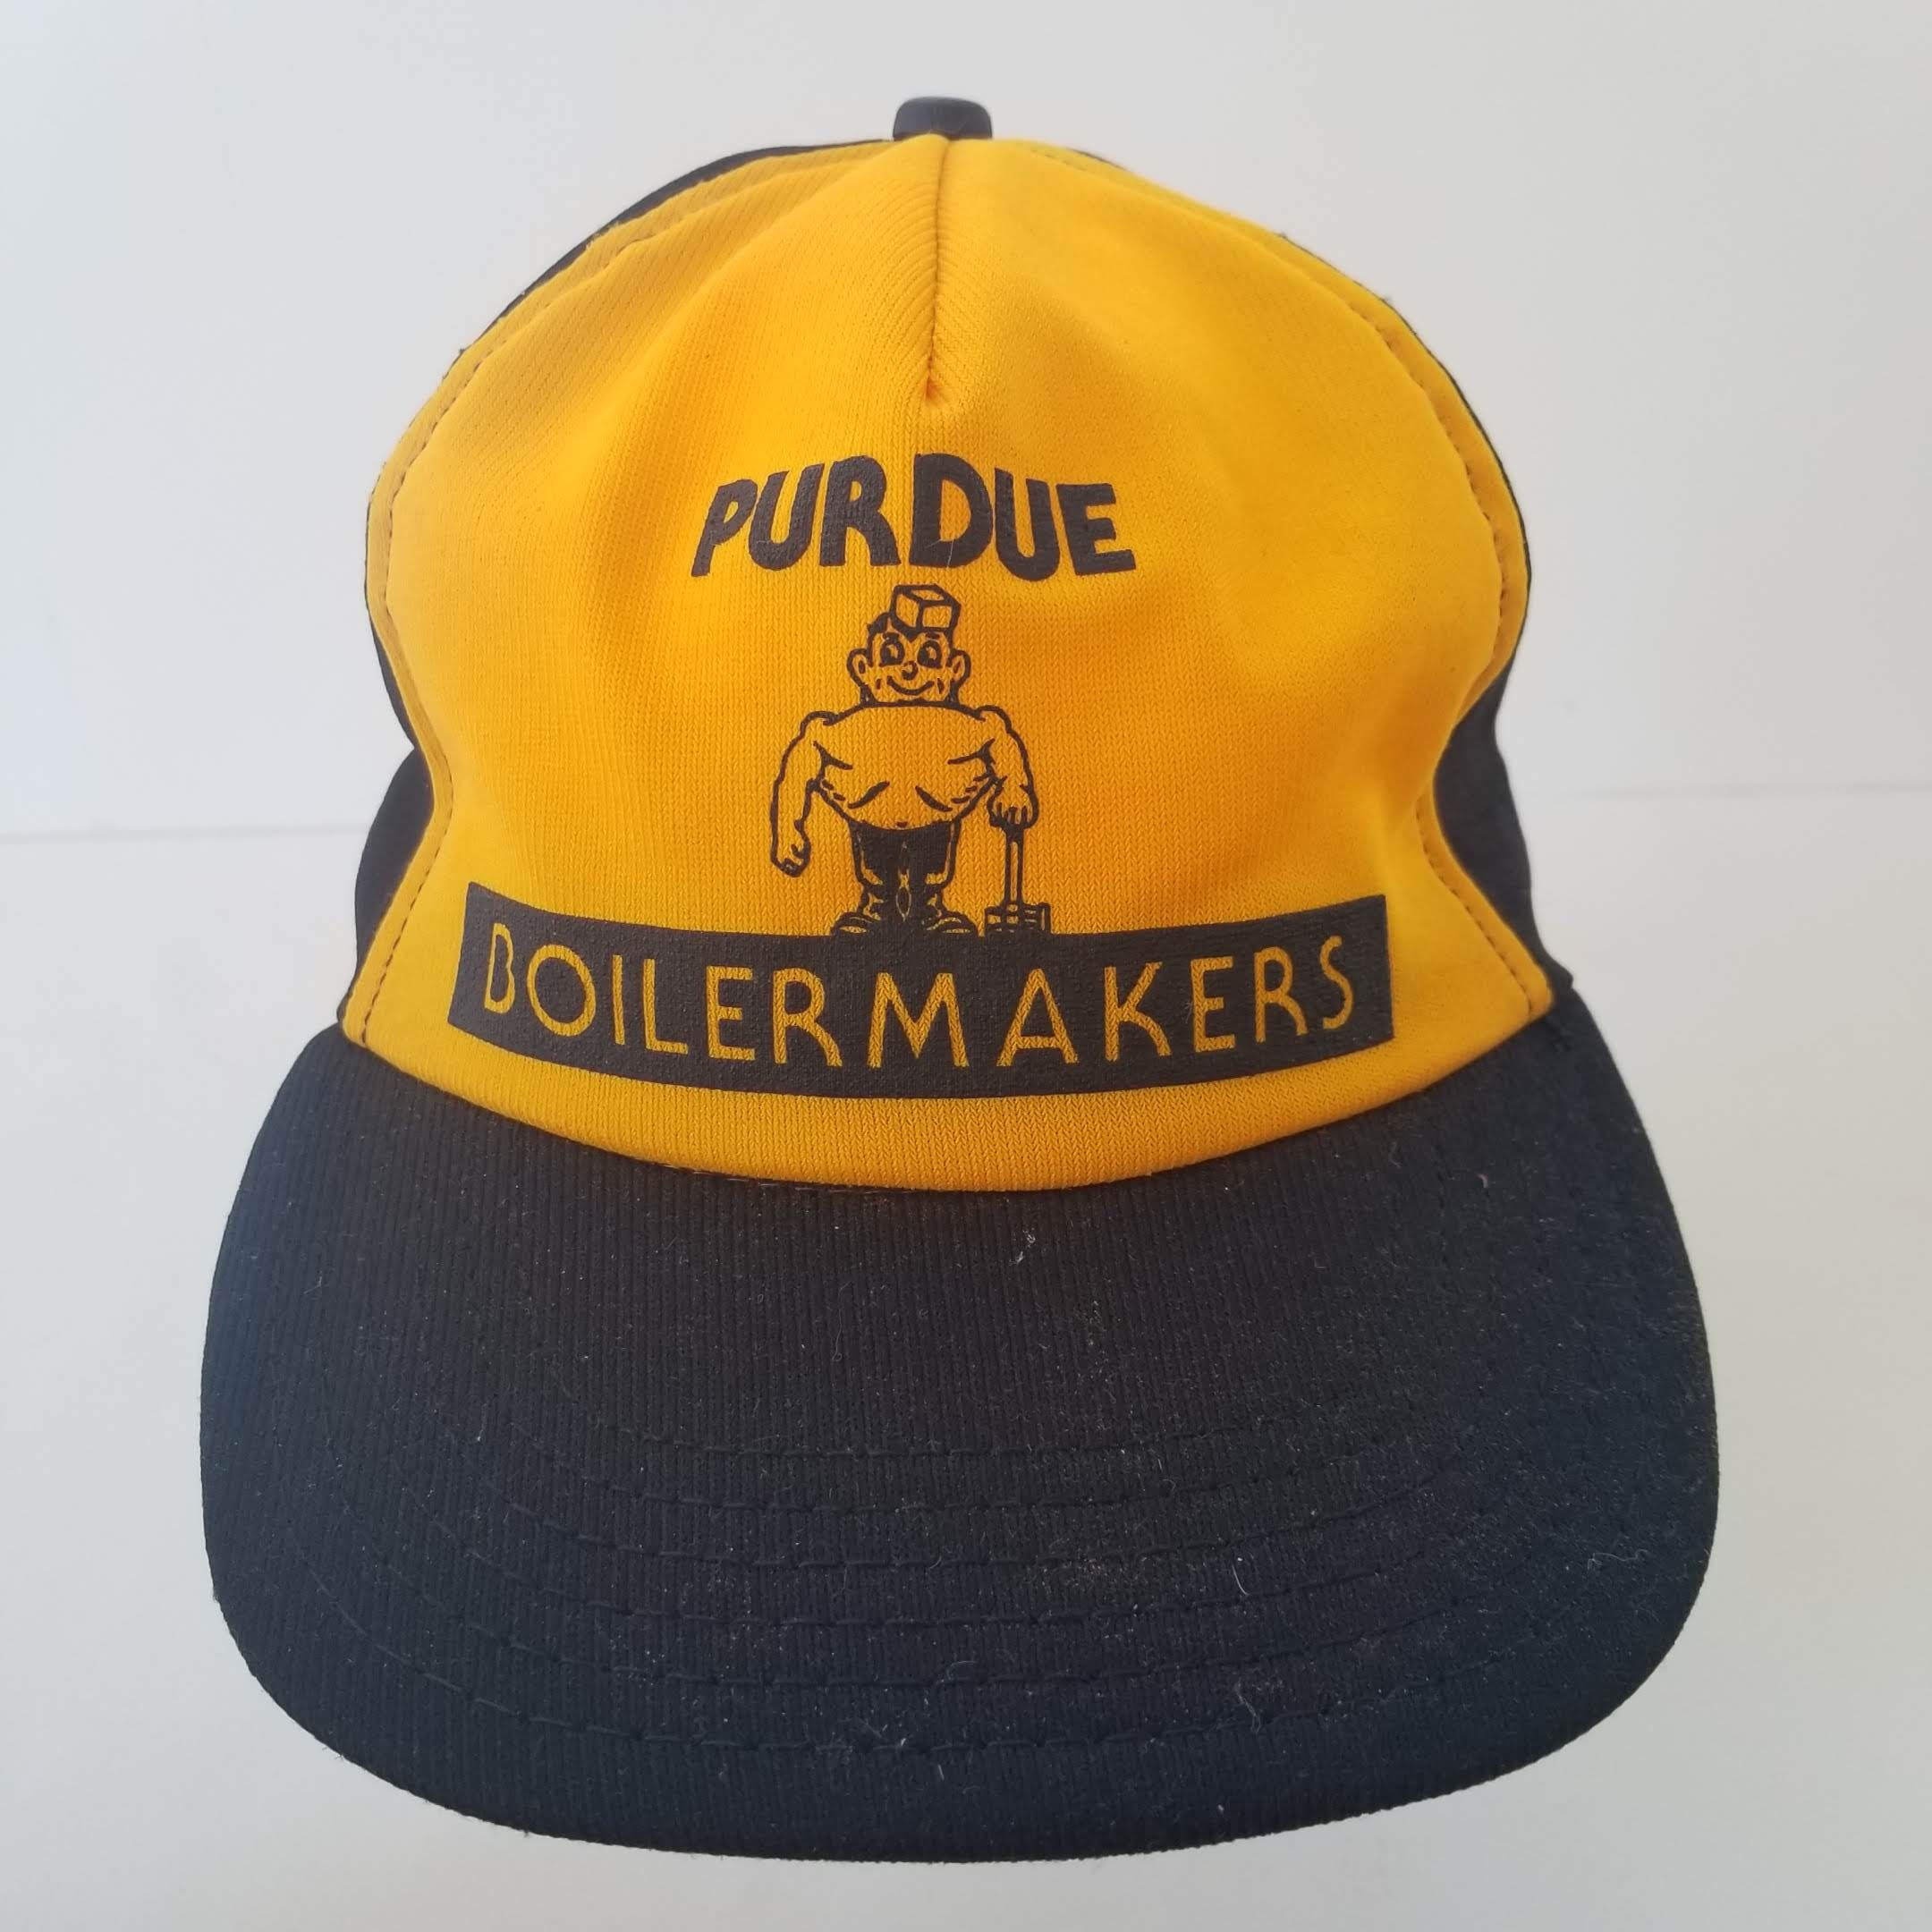 9a200948918 ... reduced vintage purdue boilermakers trucker hat snapback cap black  yellow gold made in usa perdue pete